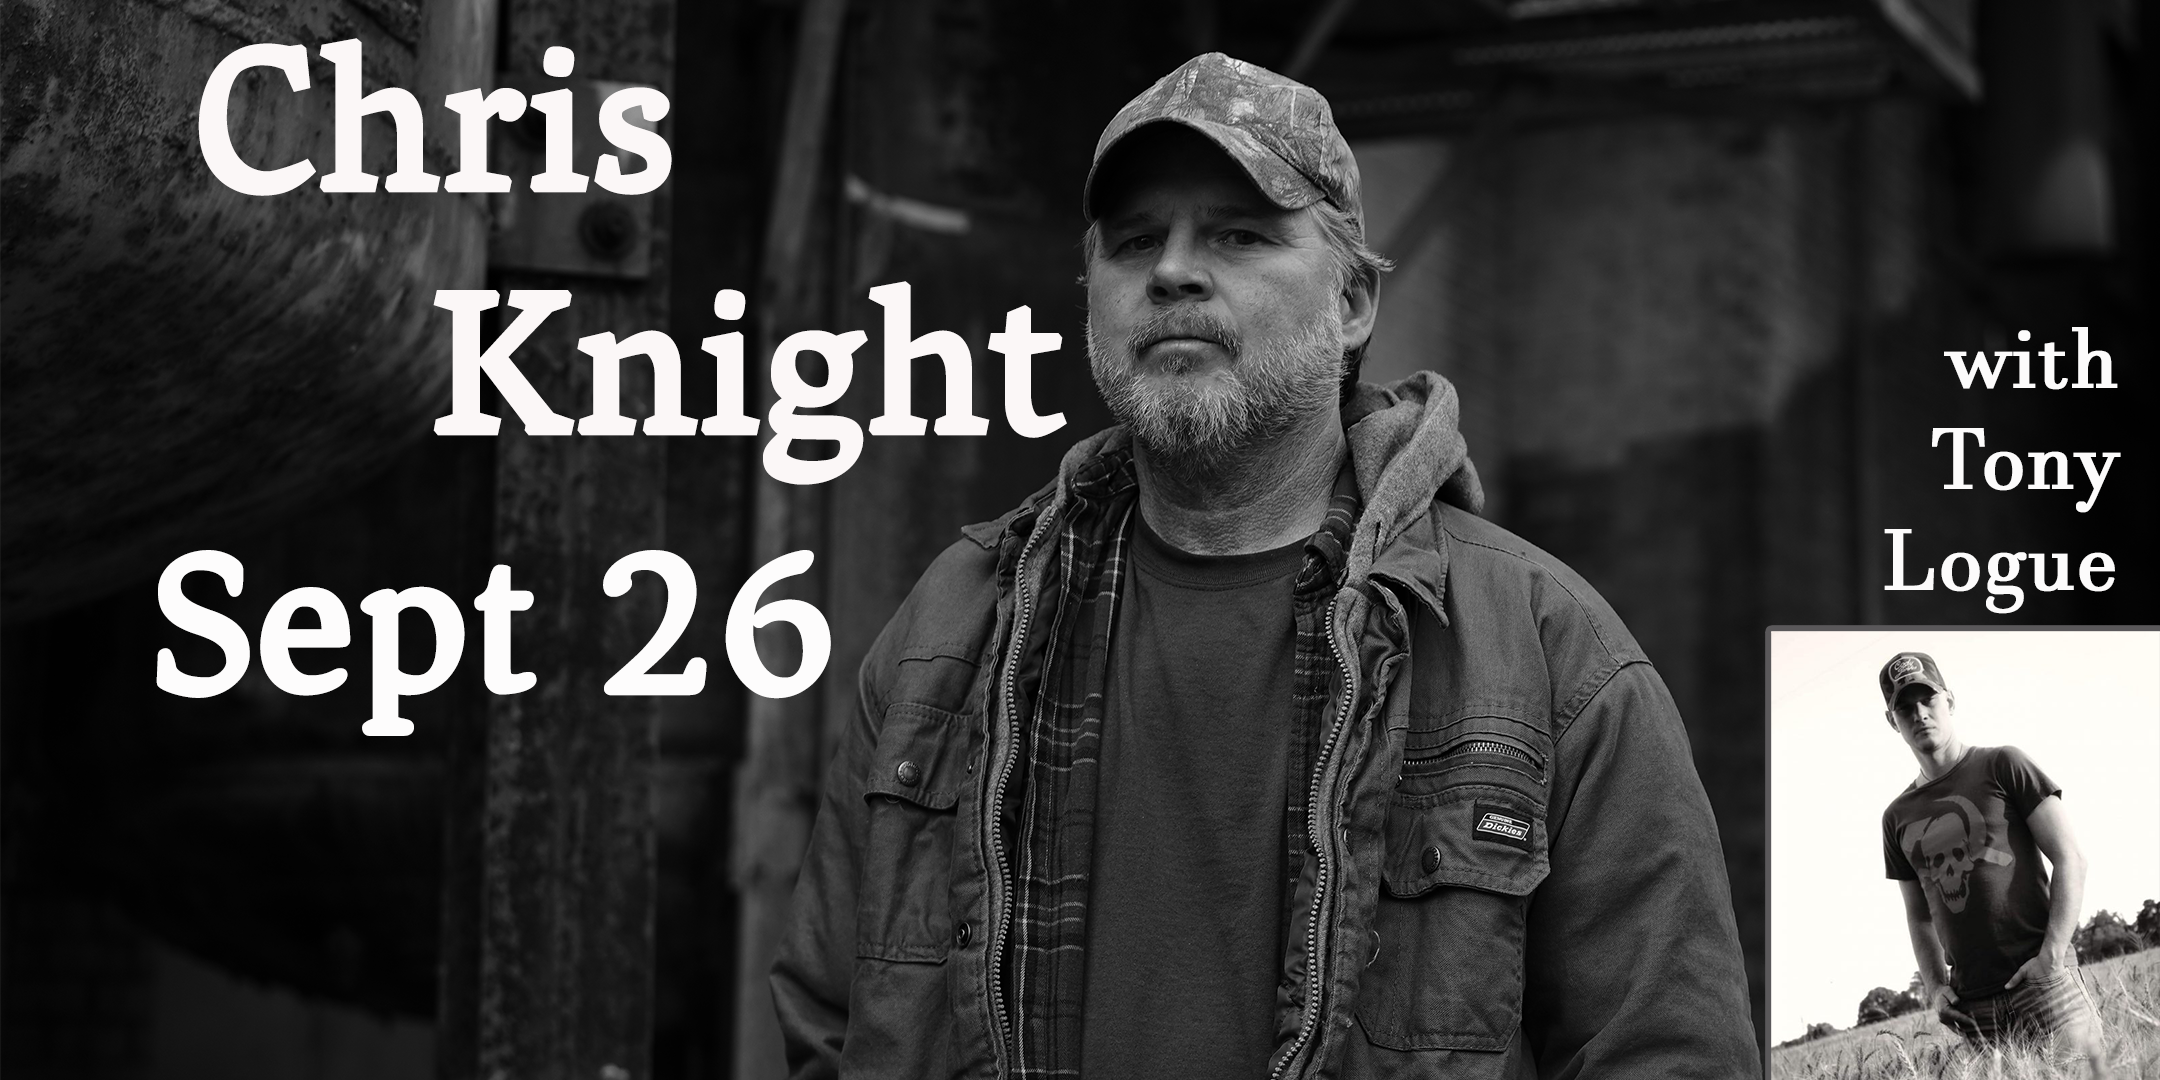 Chris Knight - Sept 26